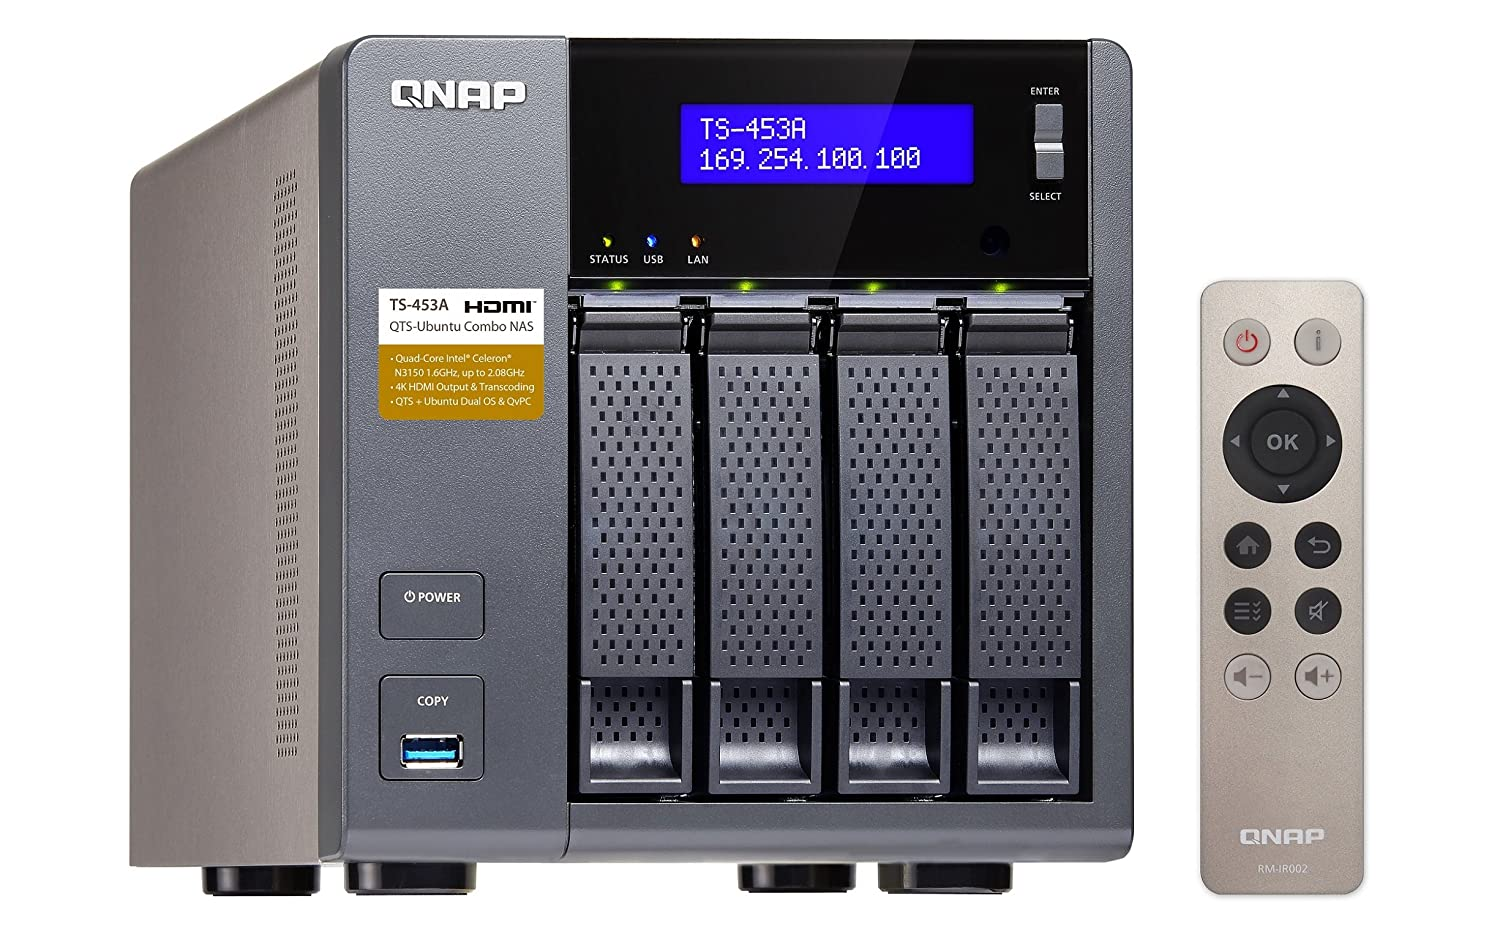 【Cybersale】QNAP TS-453A-4G NAS System 4-Bay QTS-Linux Combo NAS